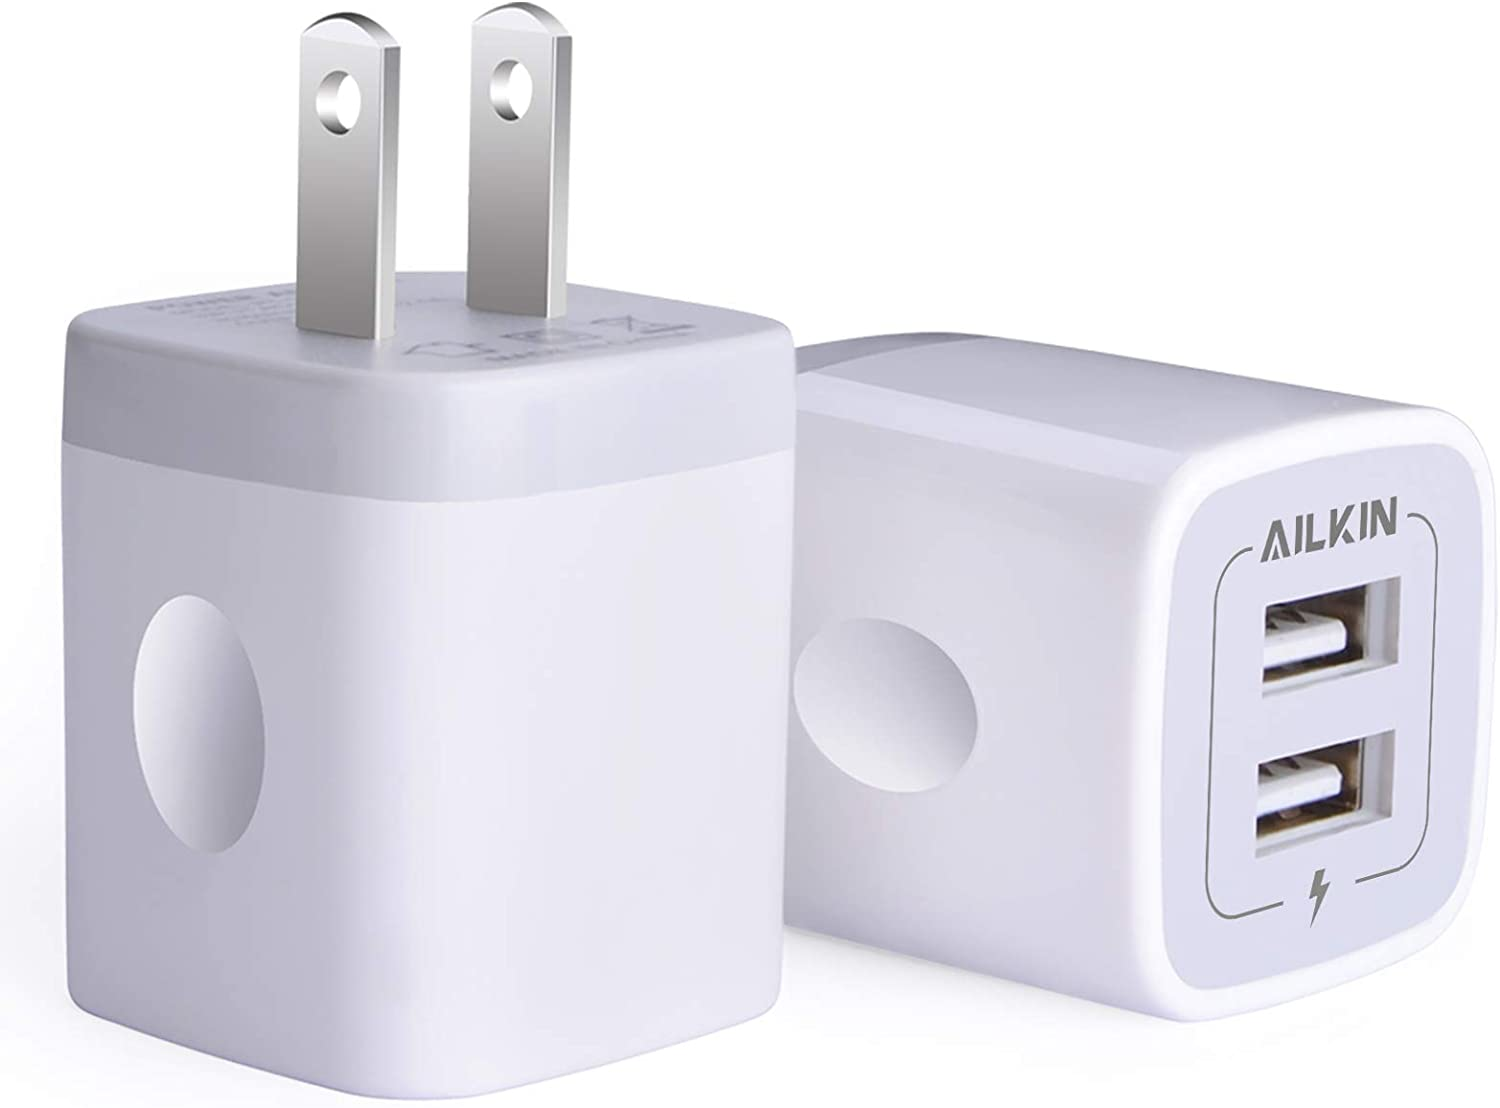 Amazon Com Usb Wall Charger Charger Adapter Ailkin 2 Pack 2 1amp Dual Port Quick Charger Plug Cube For Iphone Se 11 Pro Max 8 7 6s 6s Plus 6 Plus 6 Samsung Galaxy S7 S6 S5 Edge Lg Htc Huawei Moto Kindle